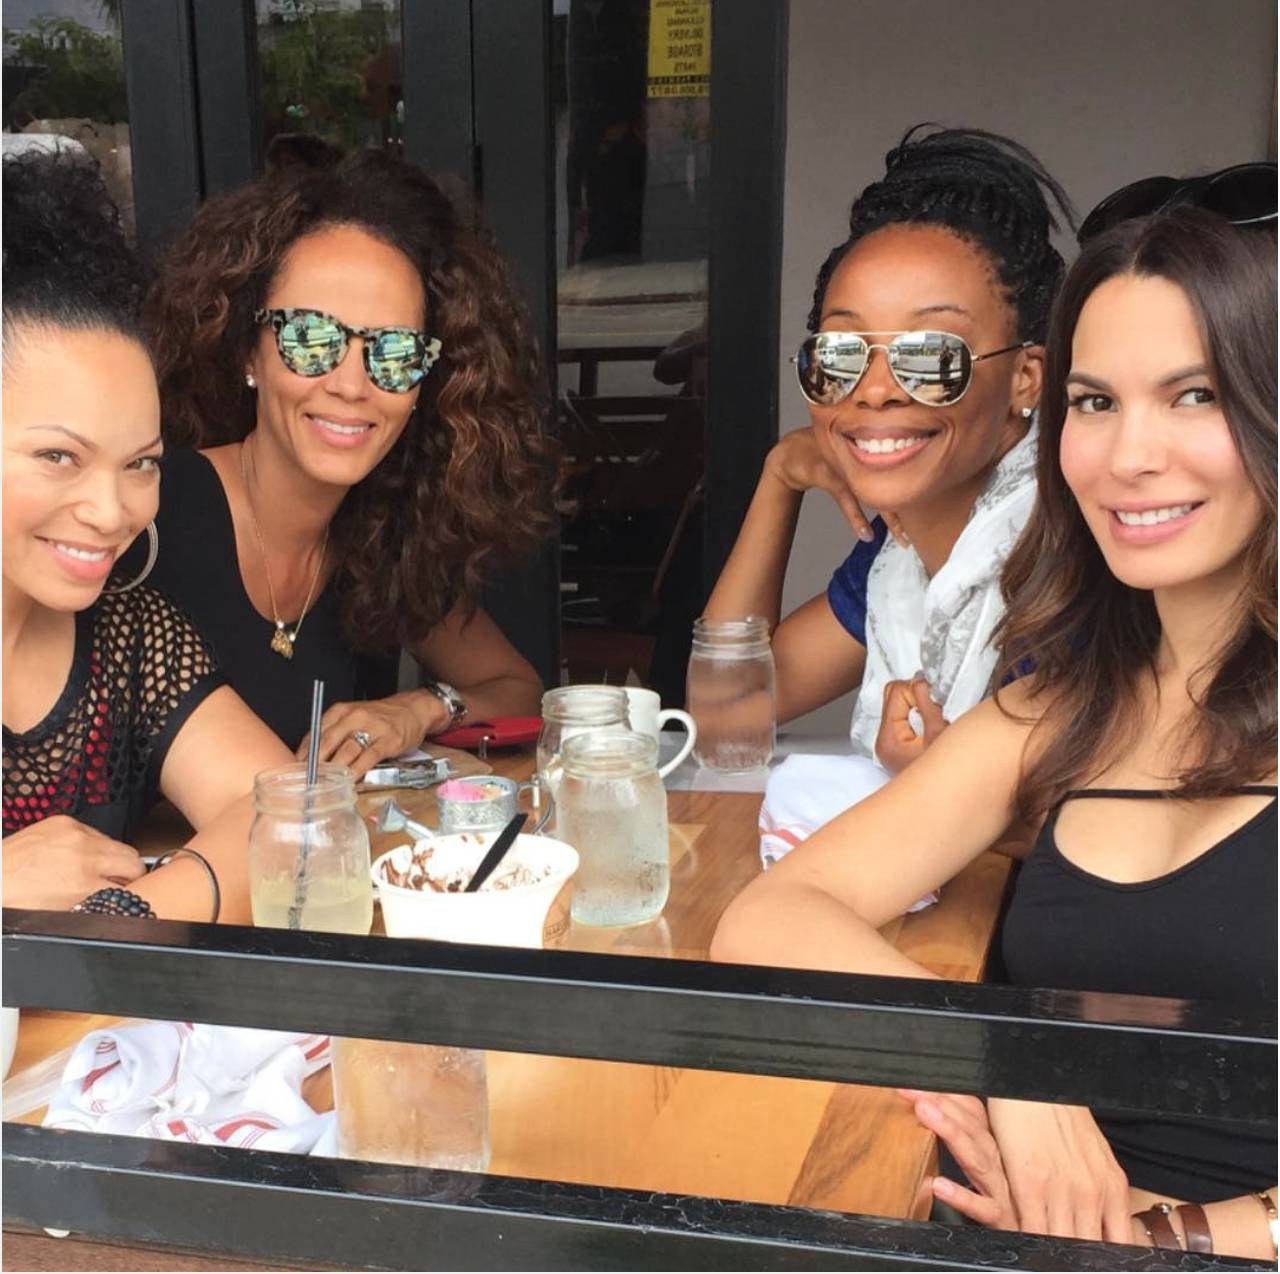 The Real Women Hung Out - What could they have possibly discussed?  (Photo: Erica Ash via Instagram)